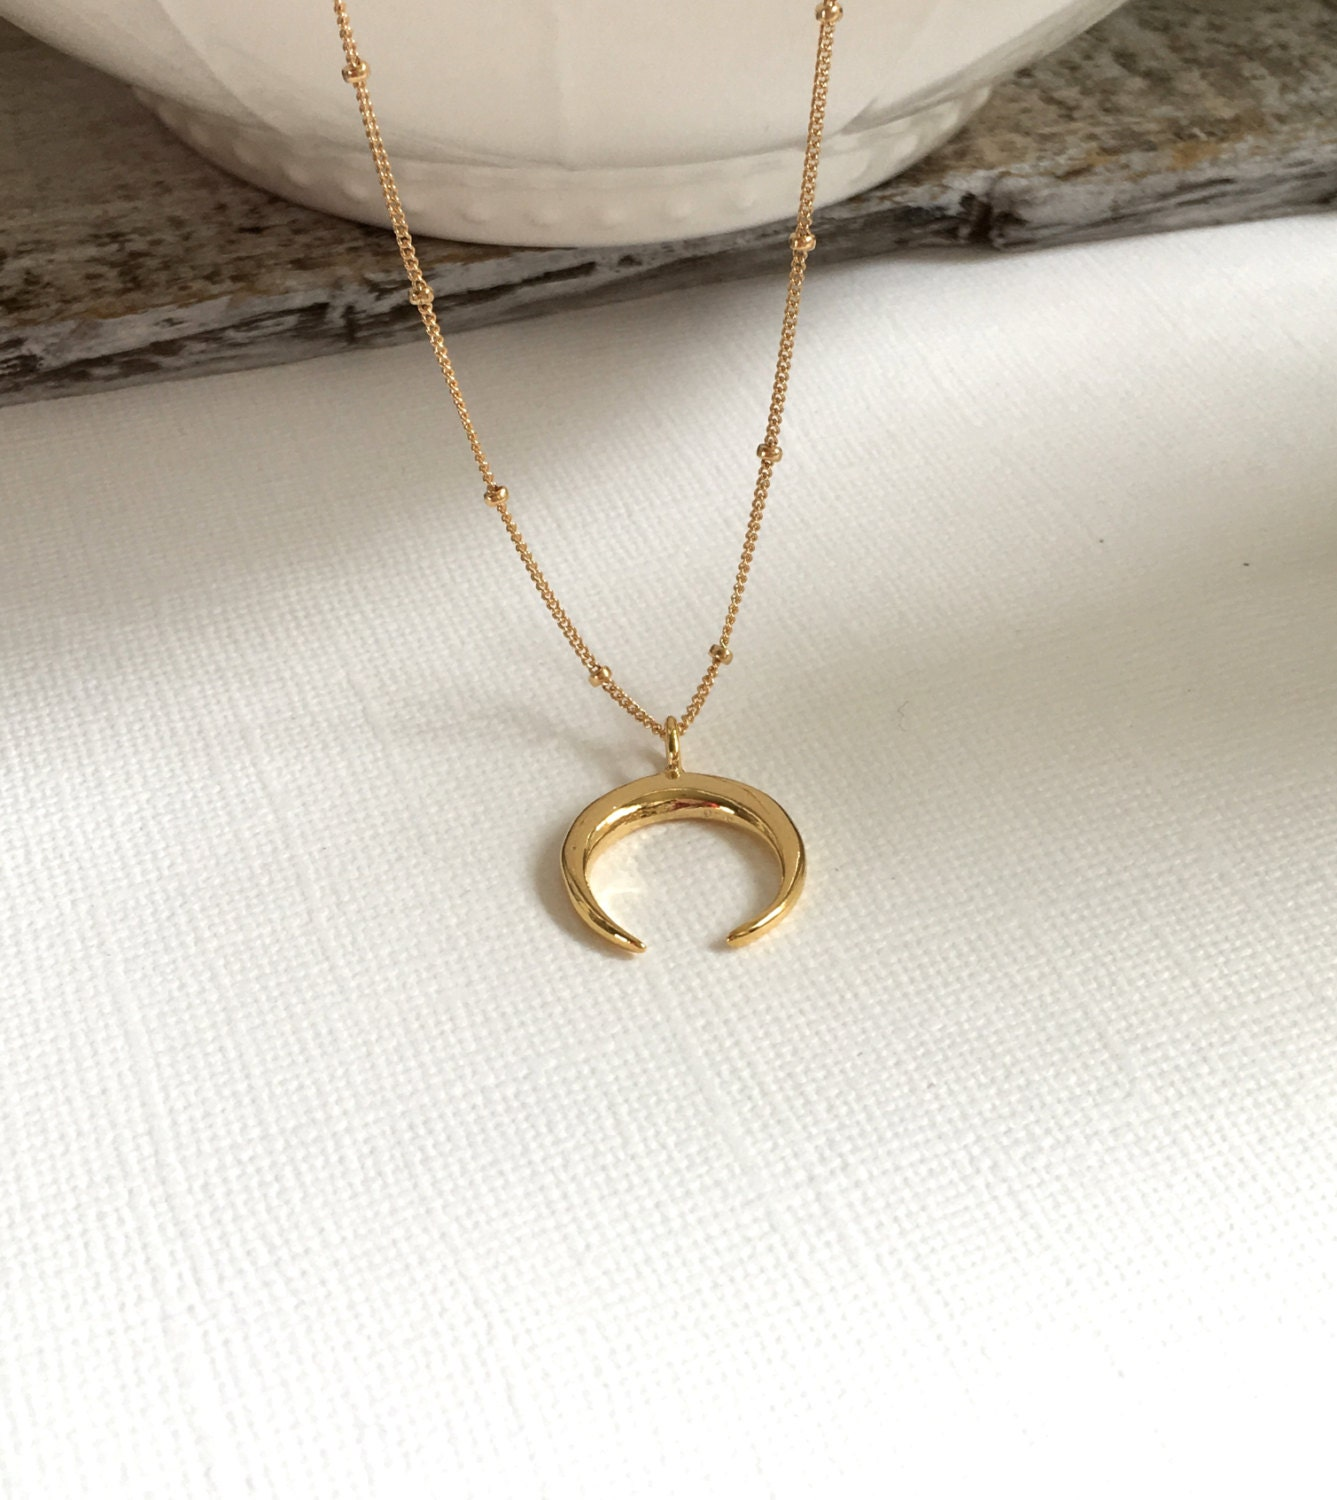 Custom Double Horn Necklace in Gold 22